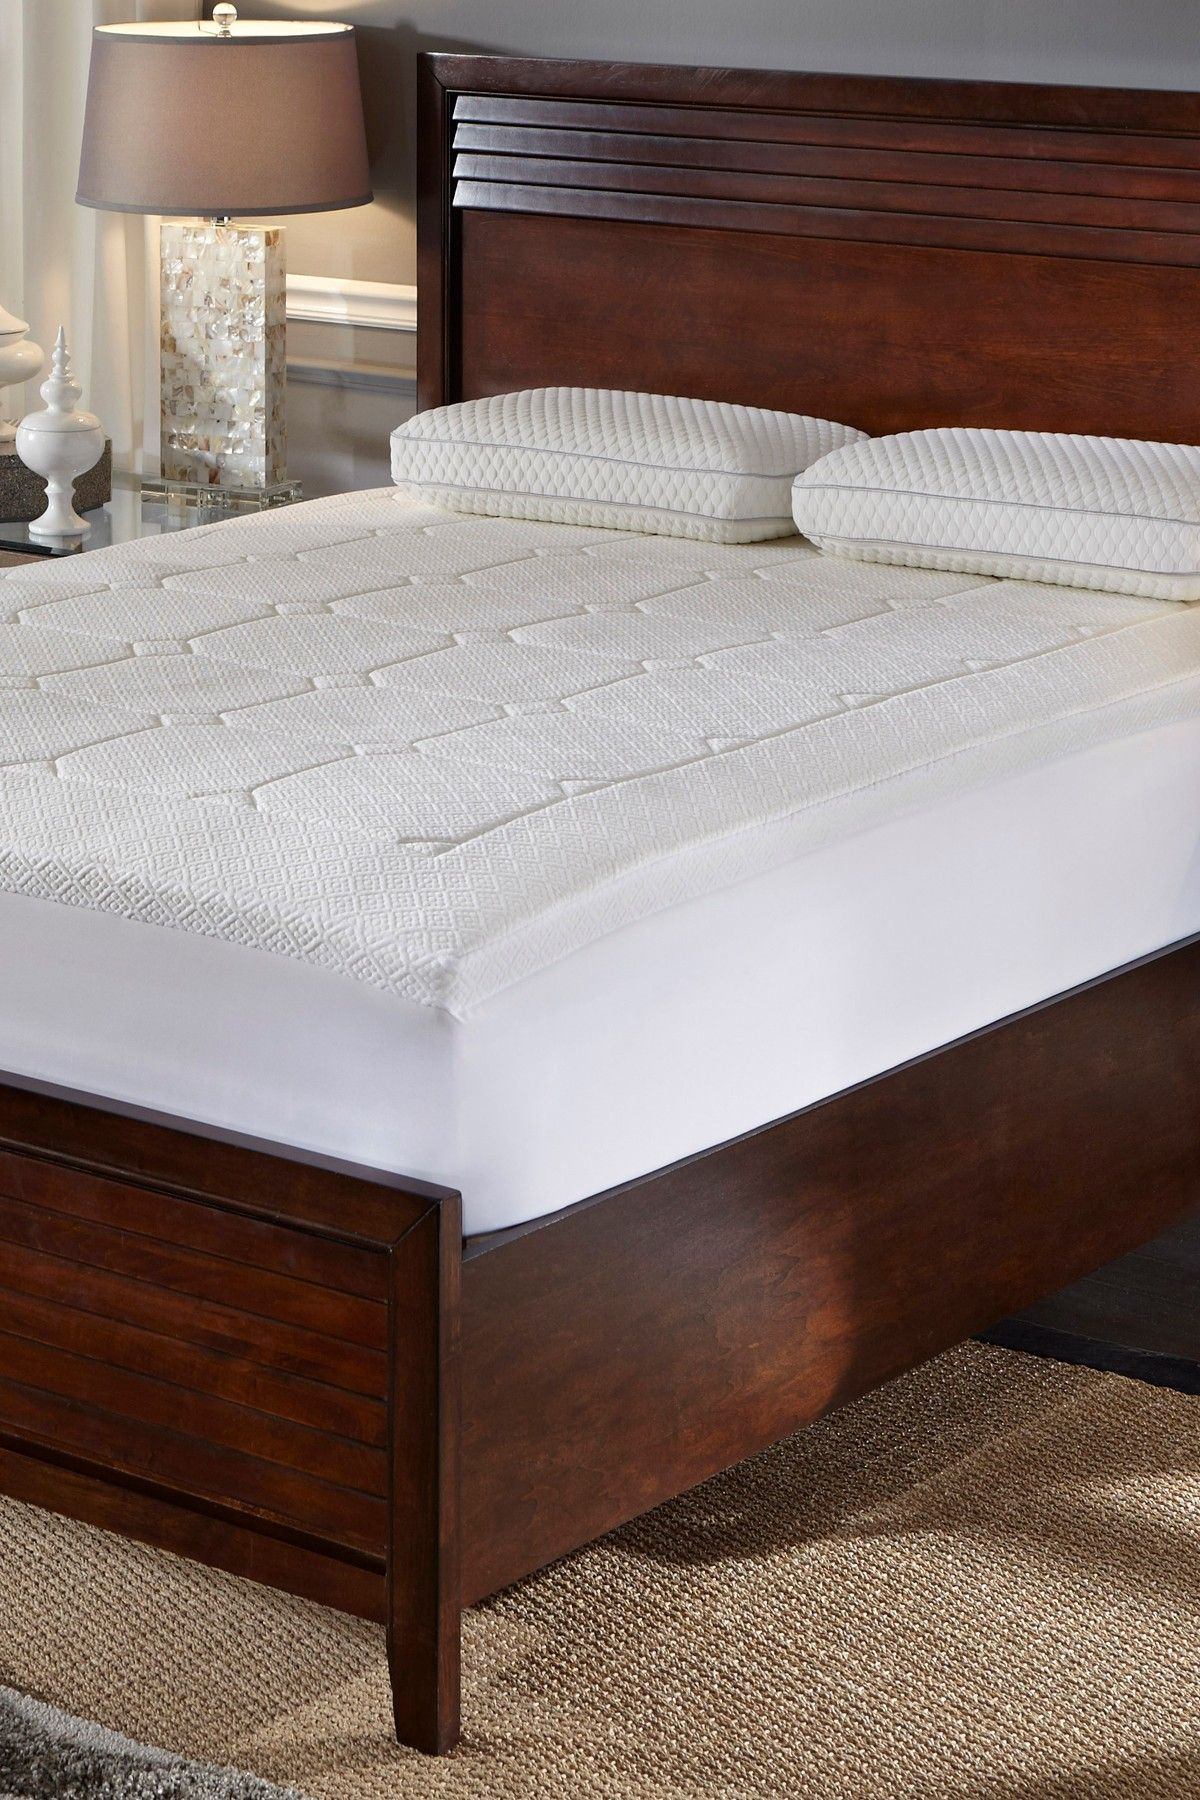 serta queen sertapedica pampano super pillow top mattress model